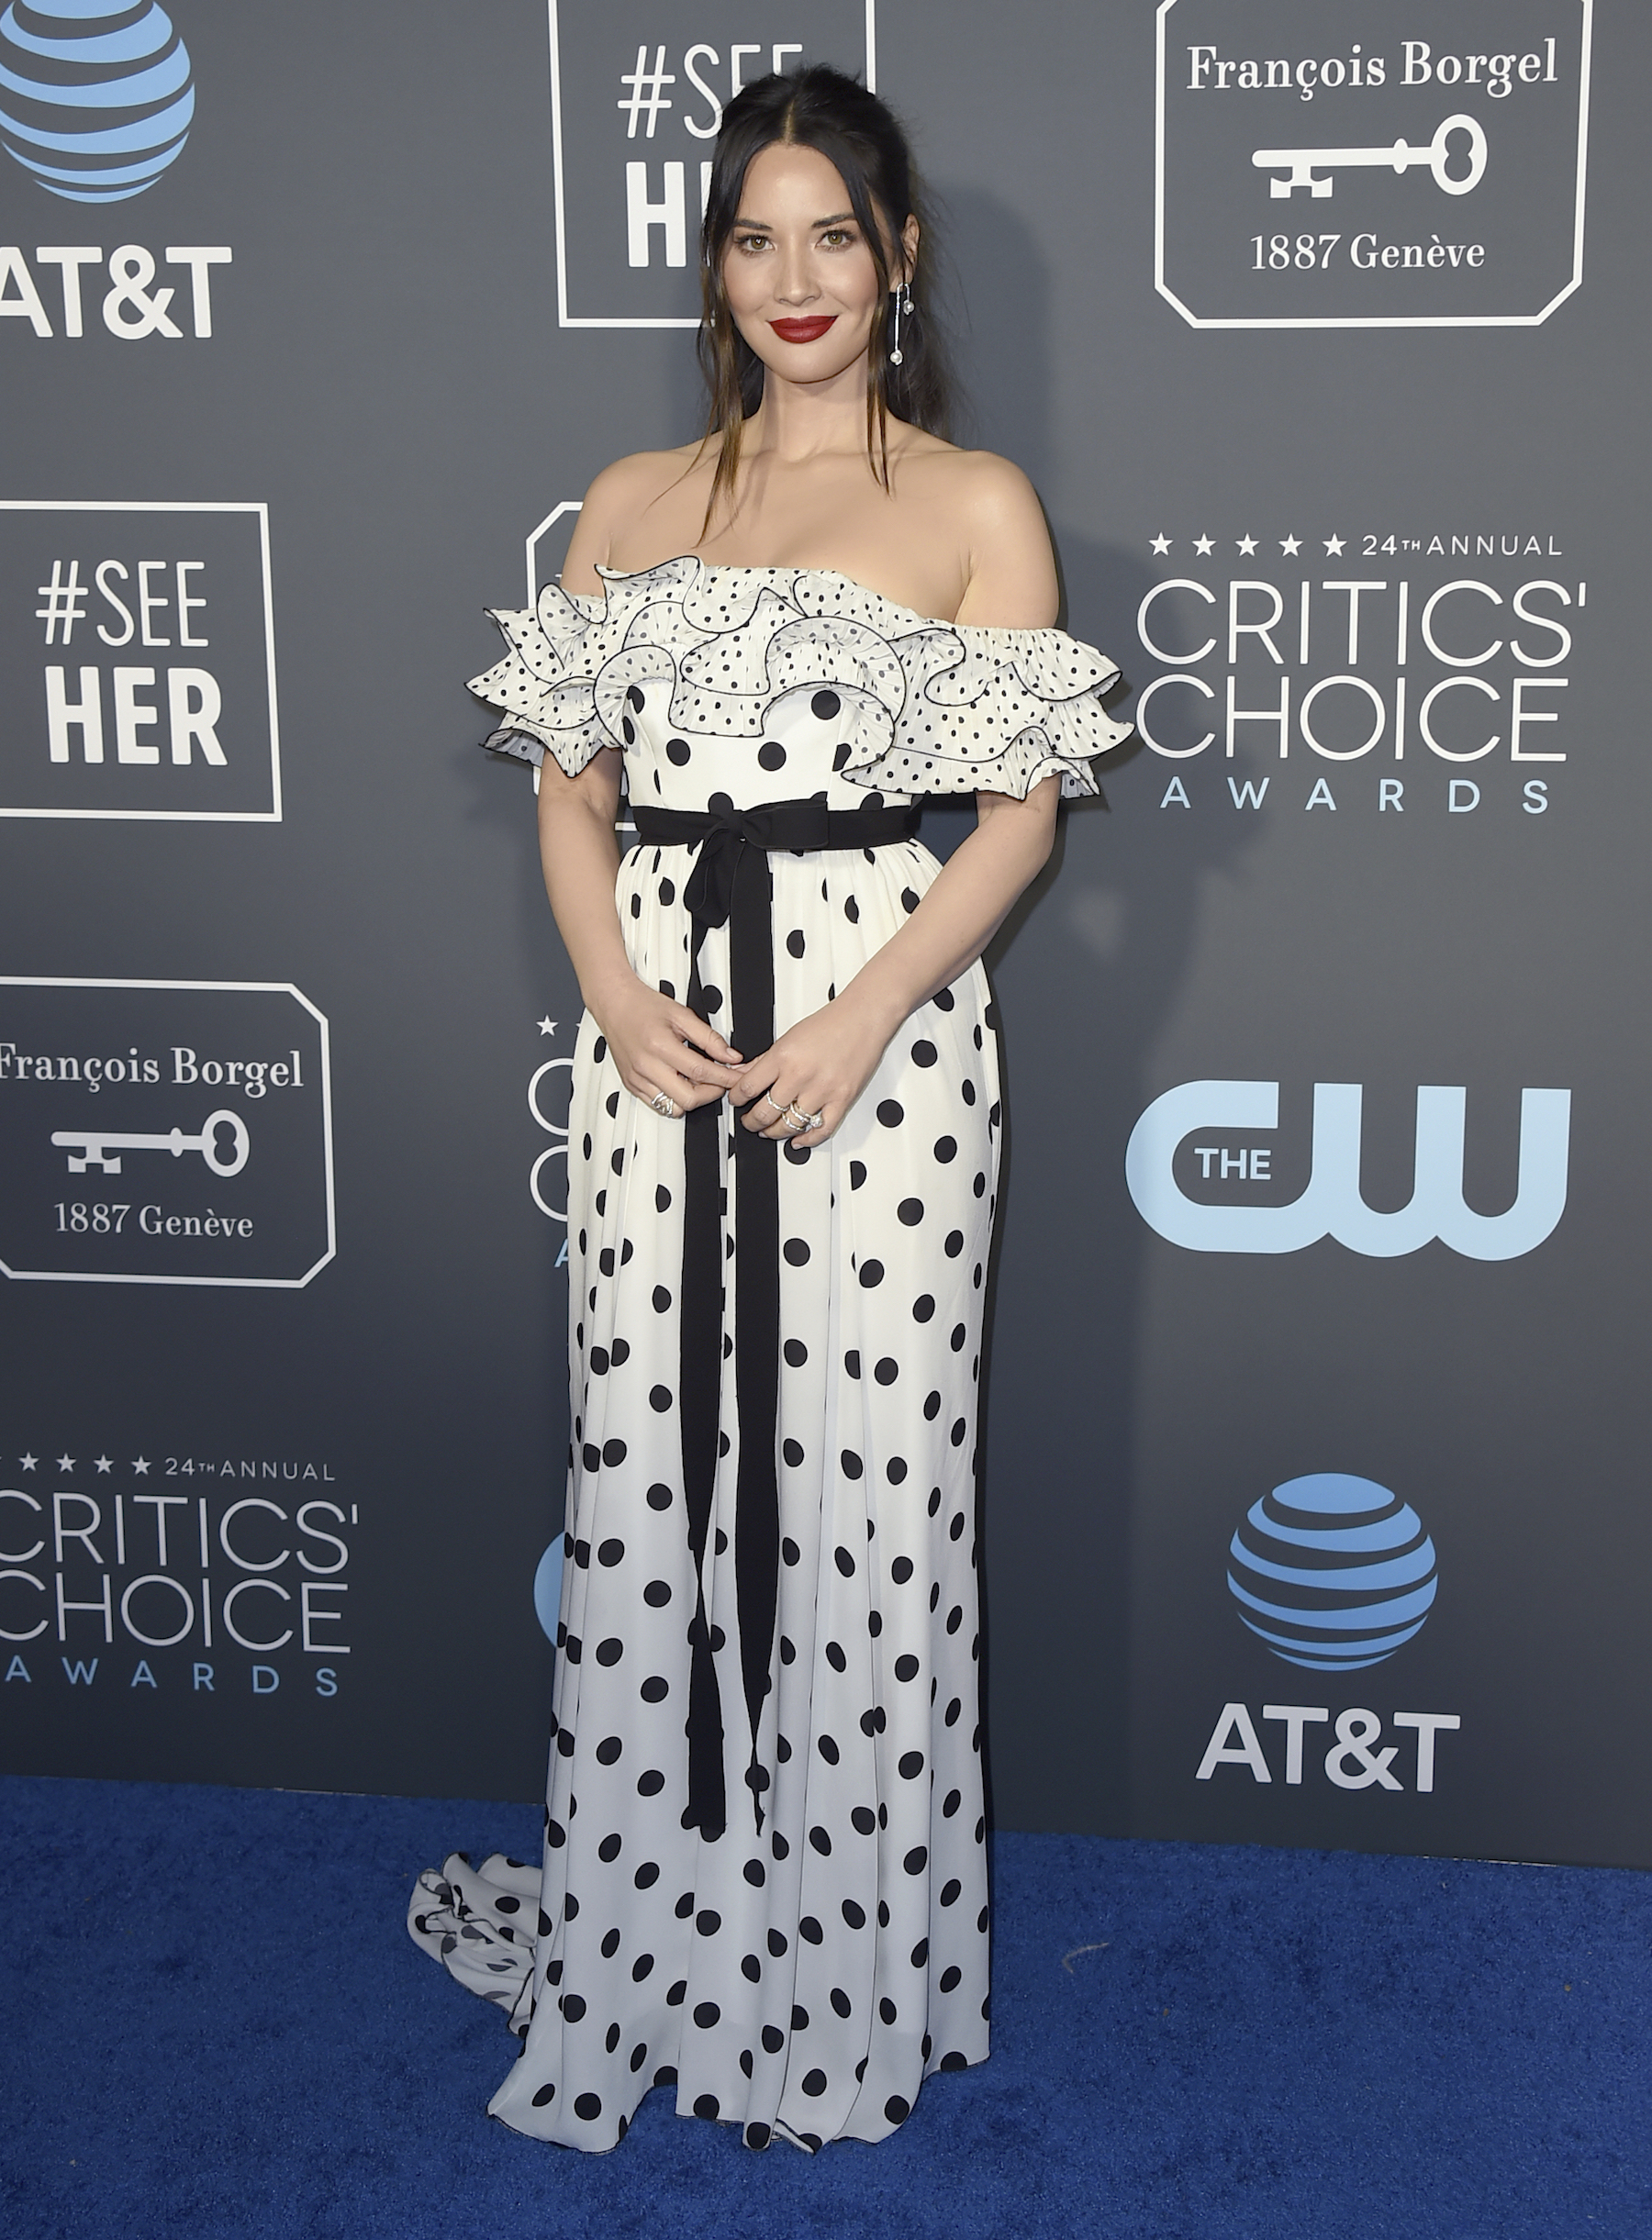 "<div class=""meta image-caption""><div class=""origin-logo origin-image ap""><span>AP</span></div><span class=""caption-text"">Olivia Munn arrives at the 24th annual Critics' Choice Awards on Sunday, Jan. 13, 2019, at the Barker Hangar in Santa Monica, Calif. (Jordan Strauss/Invision/AP)</span></div>"